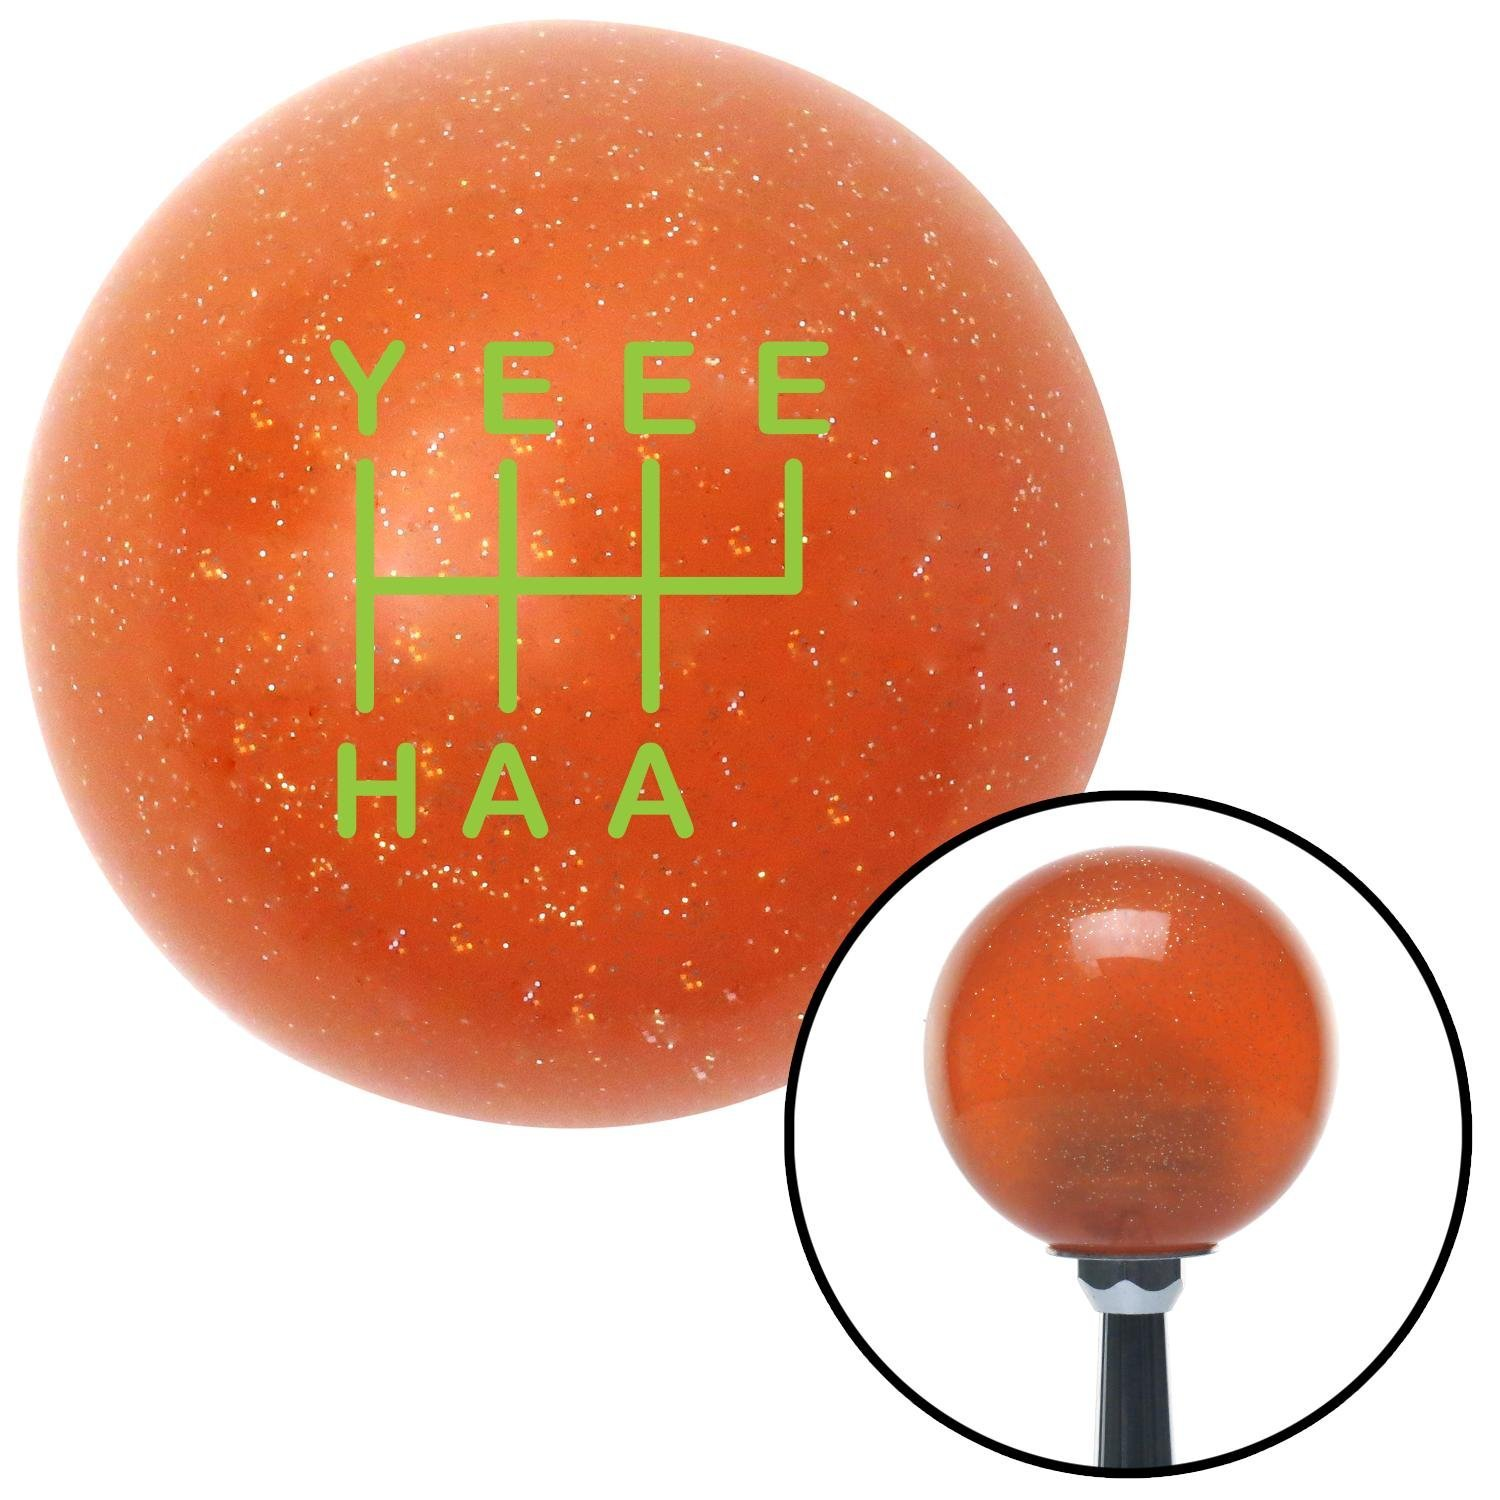 American Shifter 301227 Shift Knob Green YeeeHaa 6 Speed RUR Orange Metal Flake with M16 x 1.5 Insert